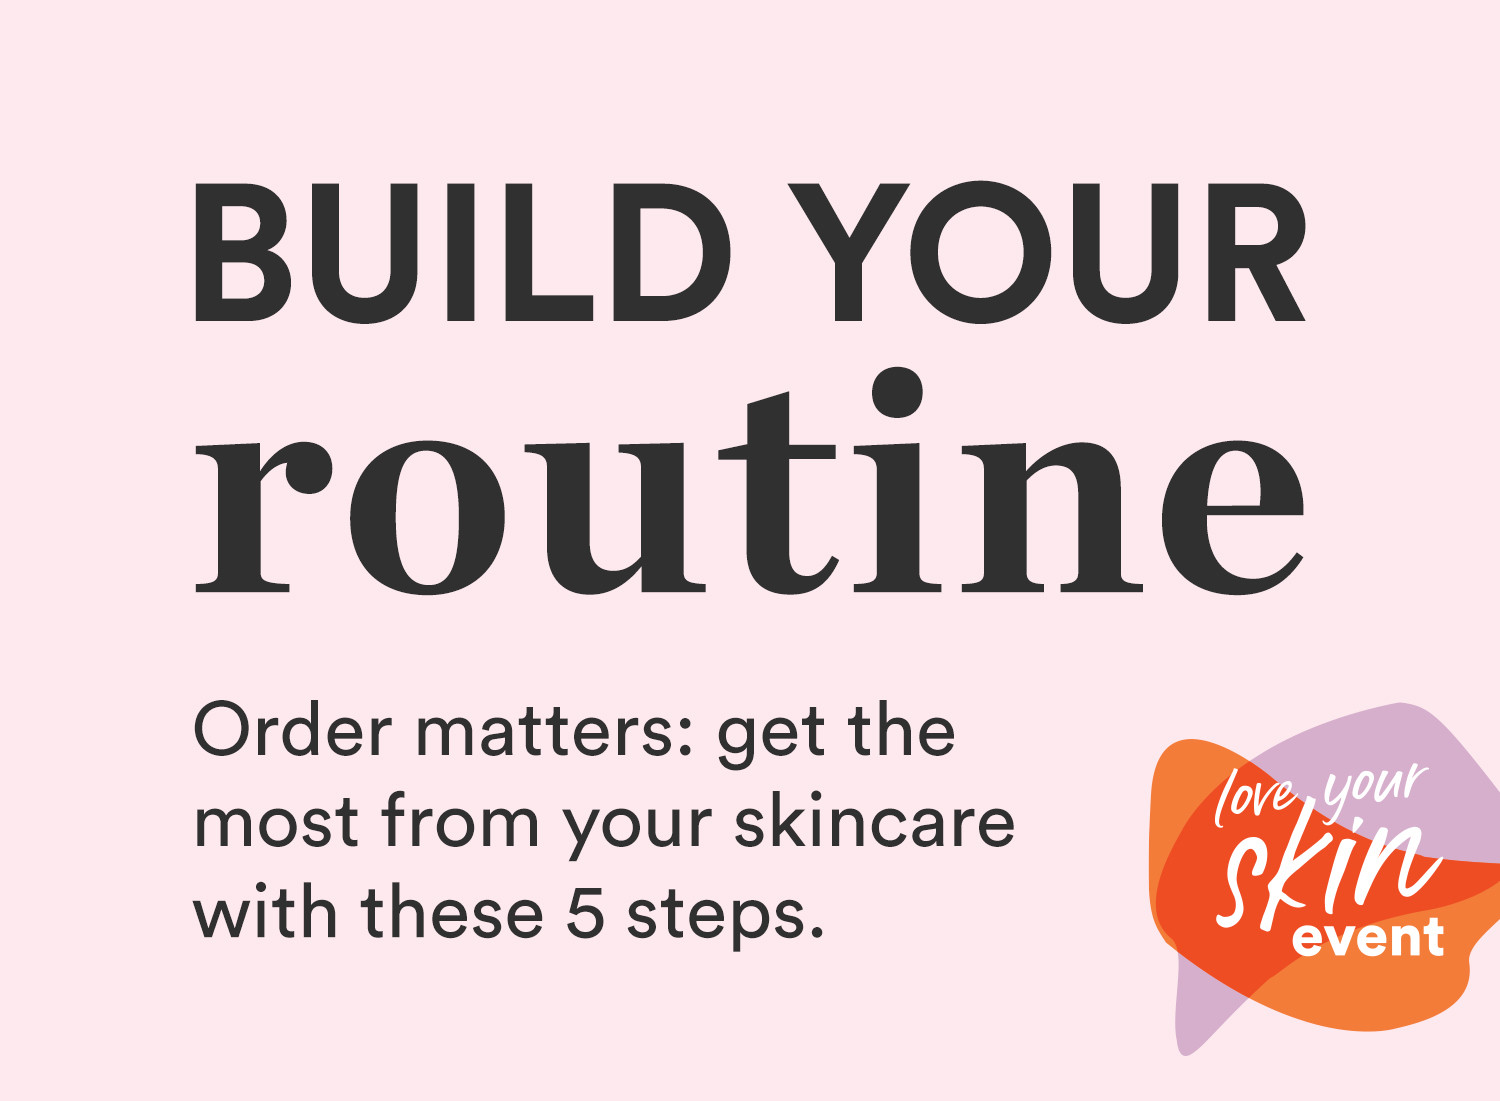 Build your skincare routine with these five steps involving cleansers, toners, treatments, serums, and moisturizers. All available for purchase during Ulta's Love Your Skin Event.